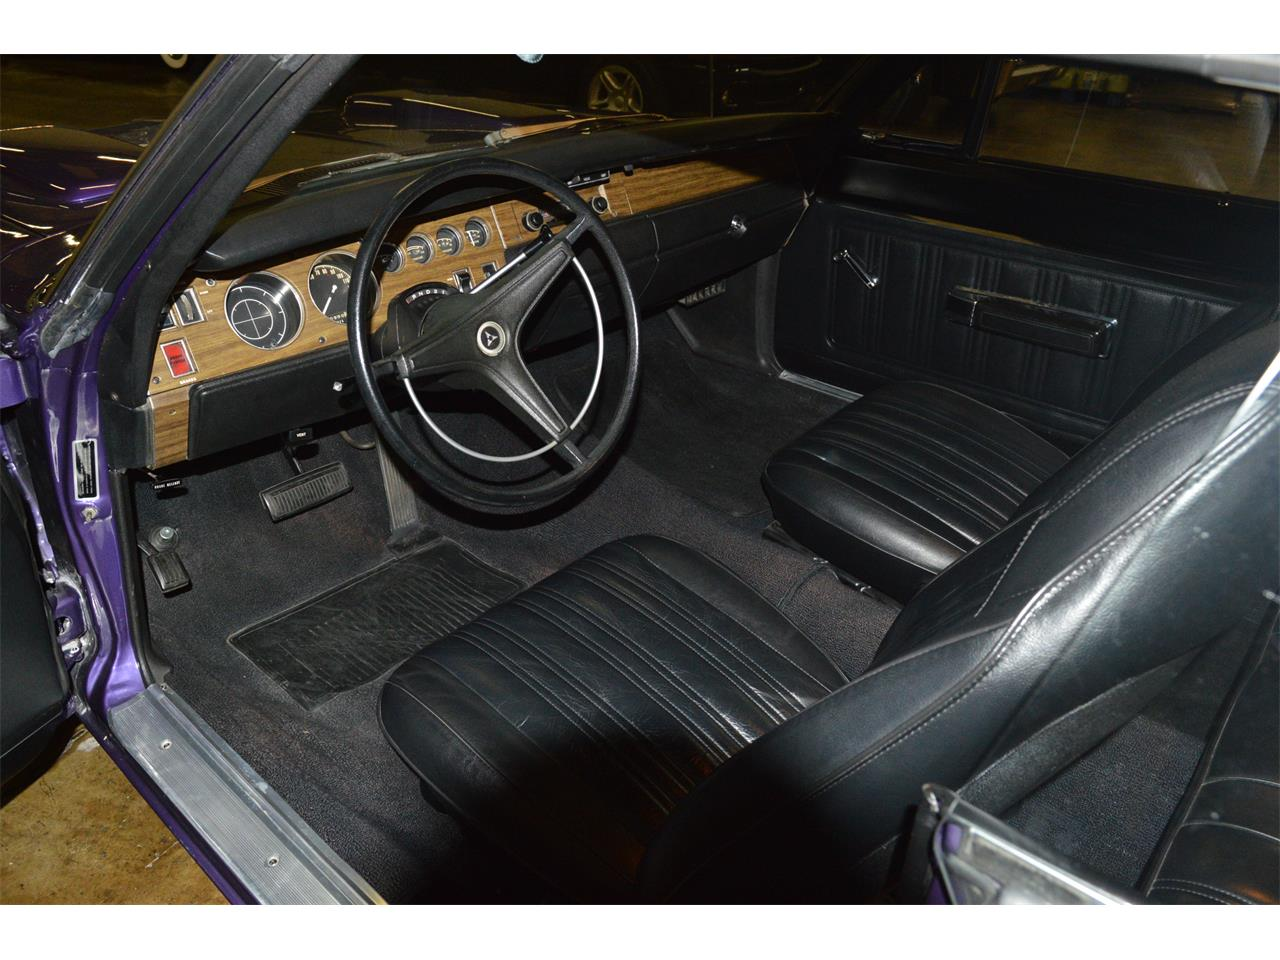 Large Picture of 1970 Super Bee located in Pennsylvania - $77,500.00 Offered by L.R.A. Enterprises Auto Museum & Sales - PQP3